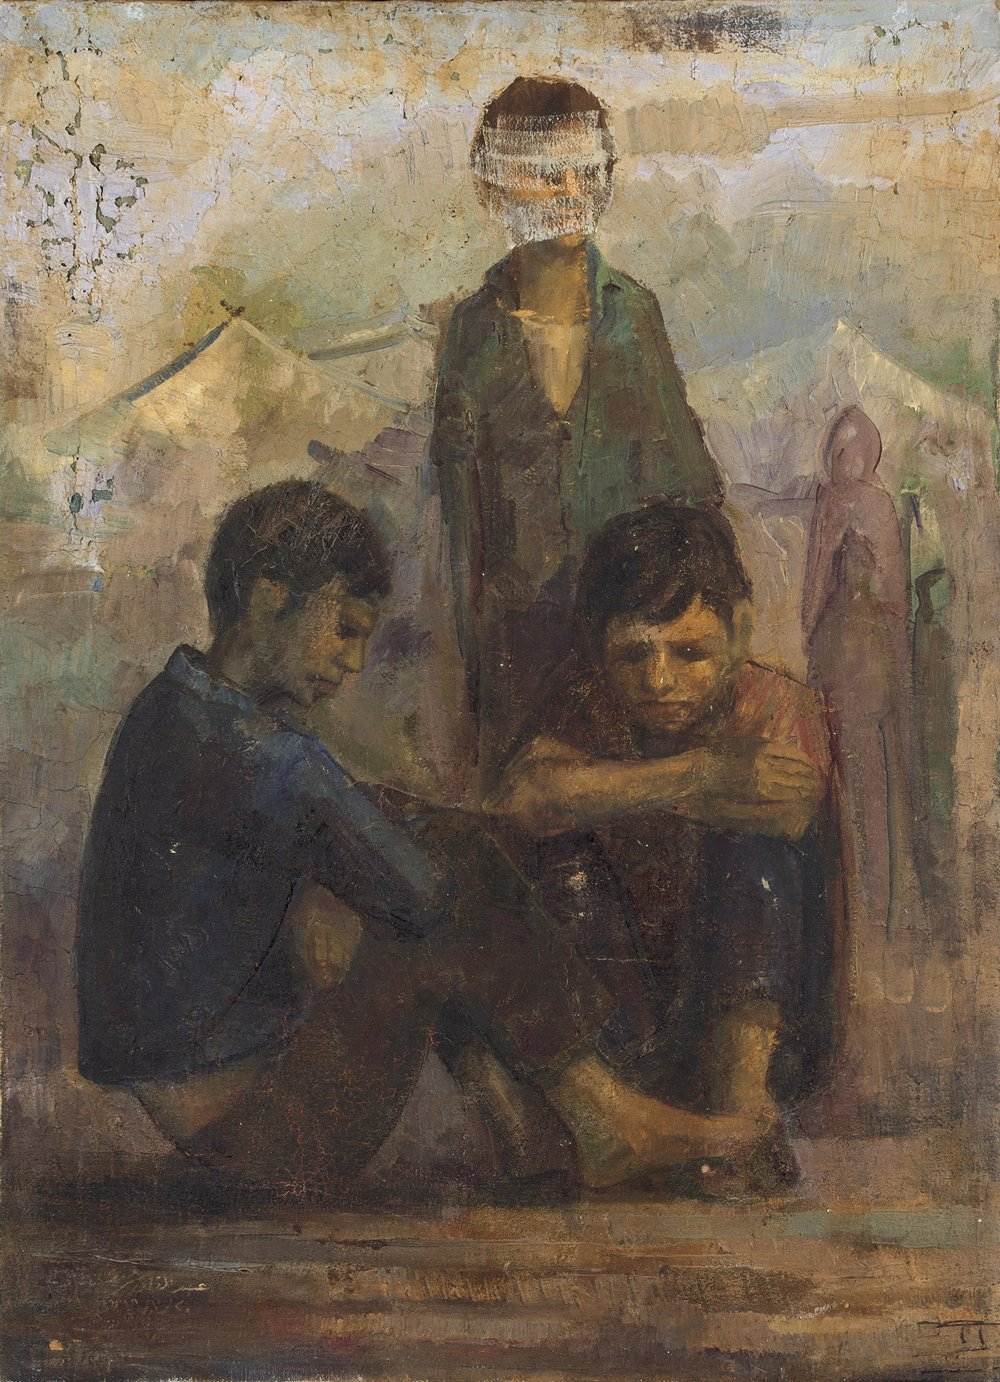 Abdulqader Al Rais, Al Intithar (The Wait), 1968. Oil on board. From the artist's private collection. Images courtesy of Dubai Arts and Culture Authority.